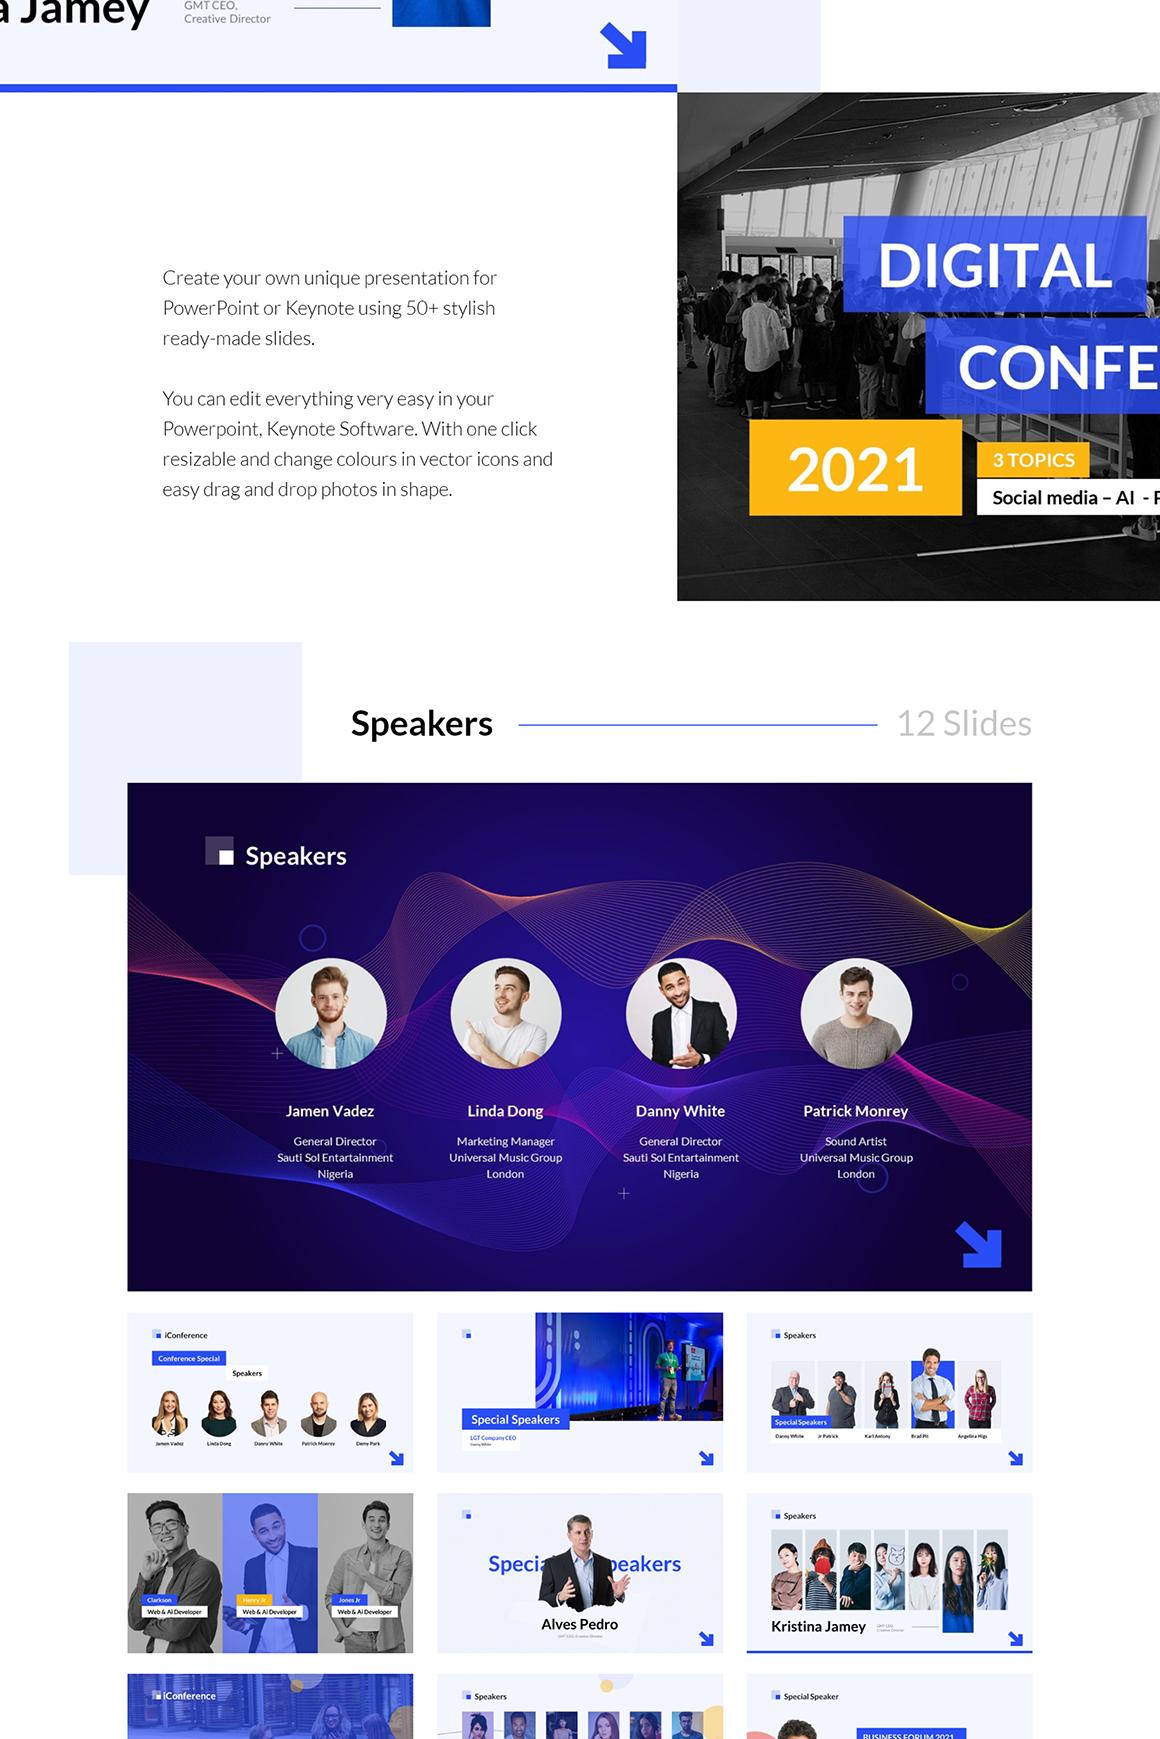 iConference - Animated Presentation Template